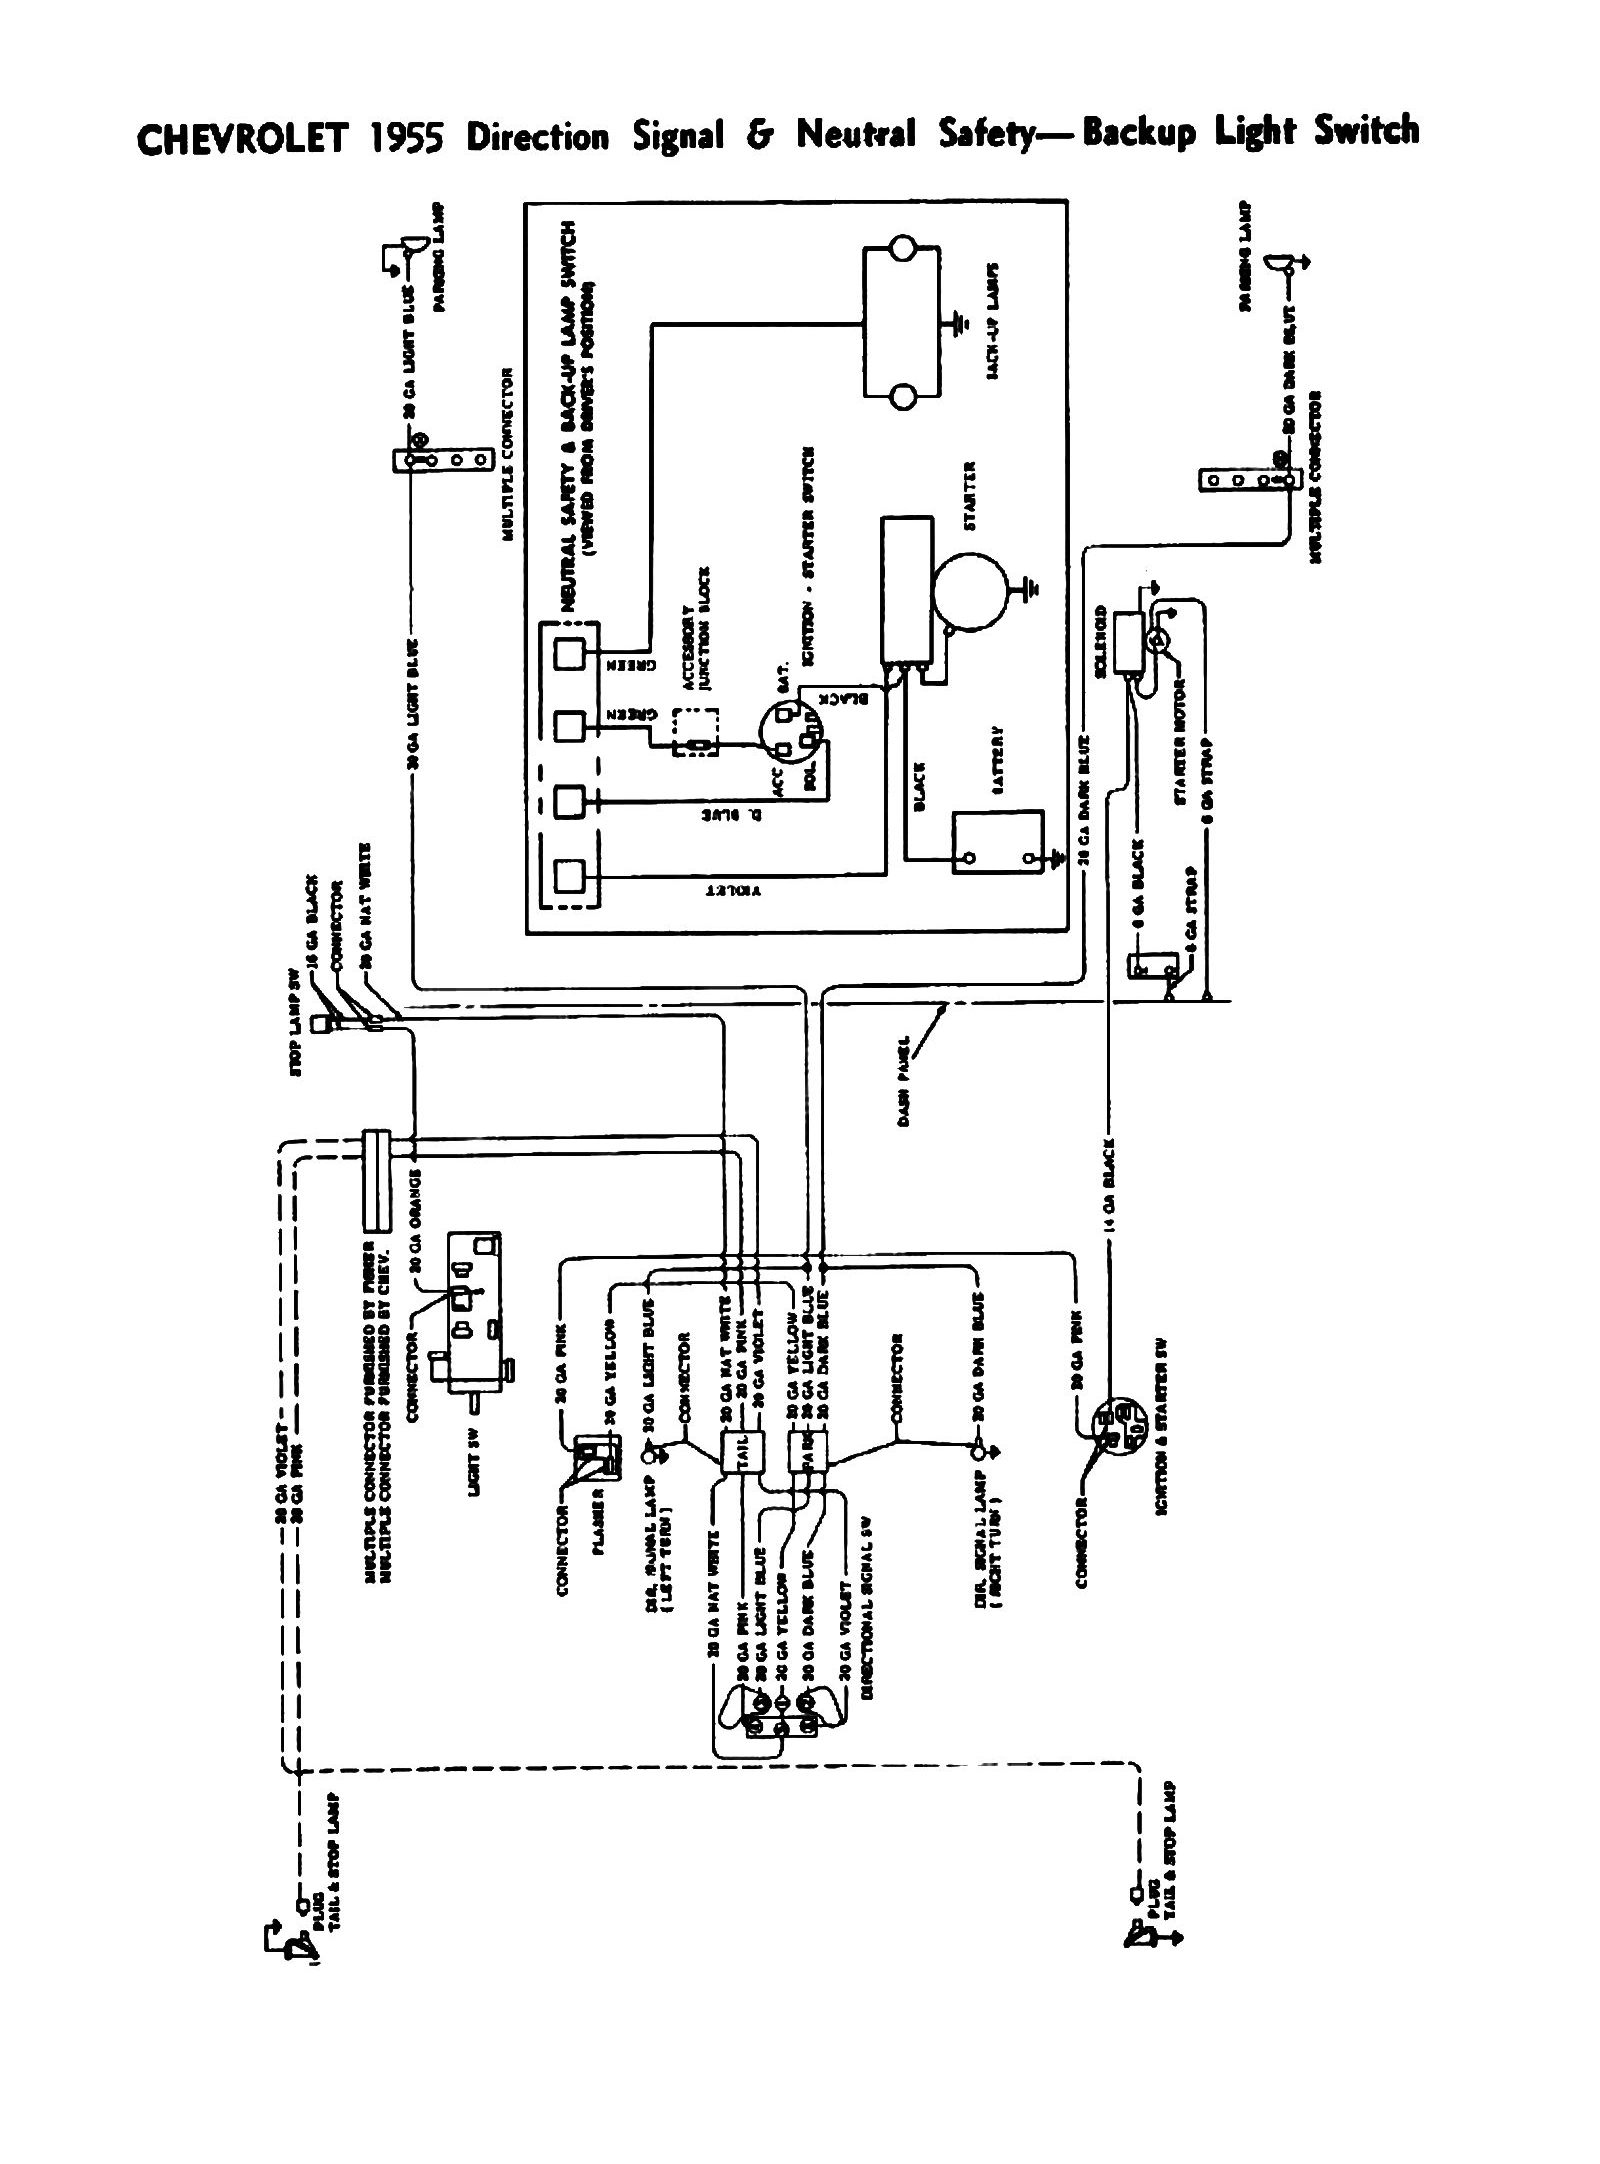 1954 Chevrolet Truck Wiring Diagram Wiring Diagram Online 1939 Ford Truck  Wiring Diagram 1951 Chevy Truck Wiring Diagram